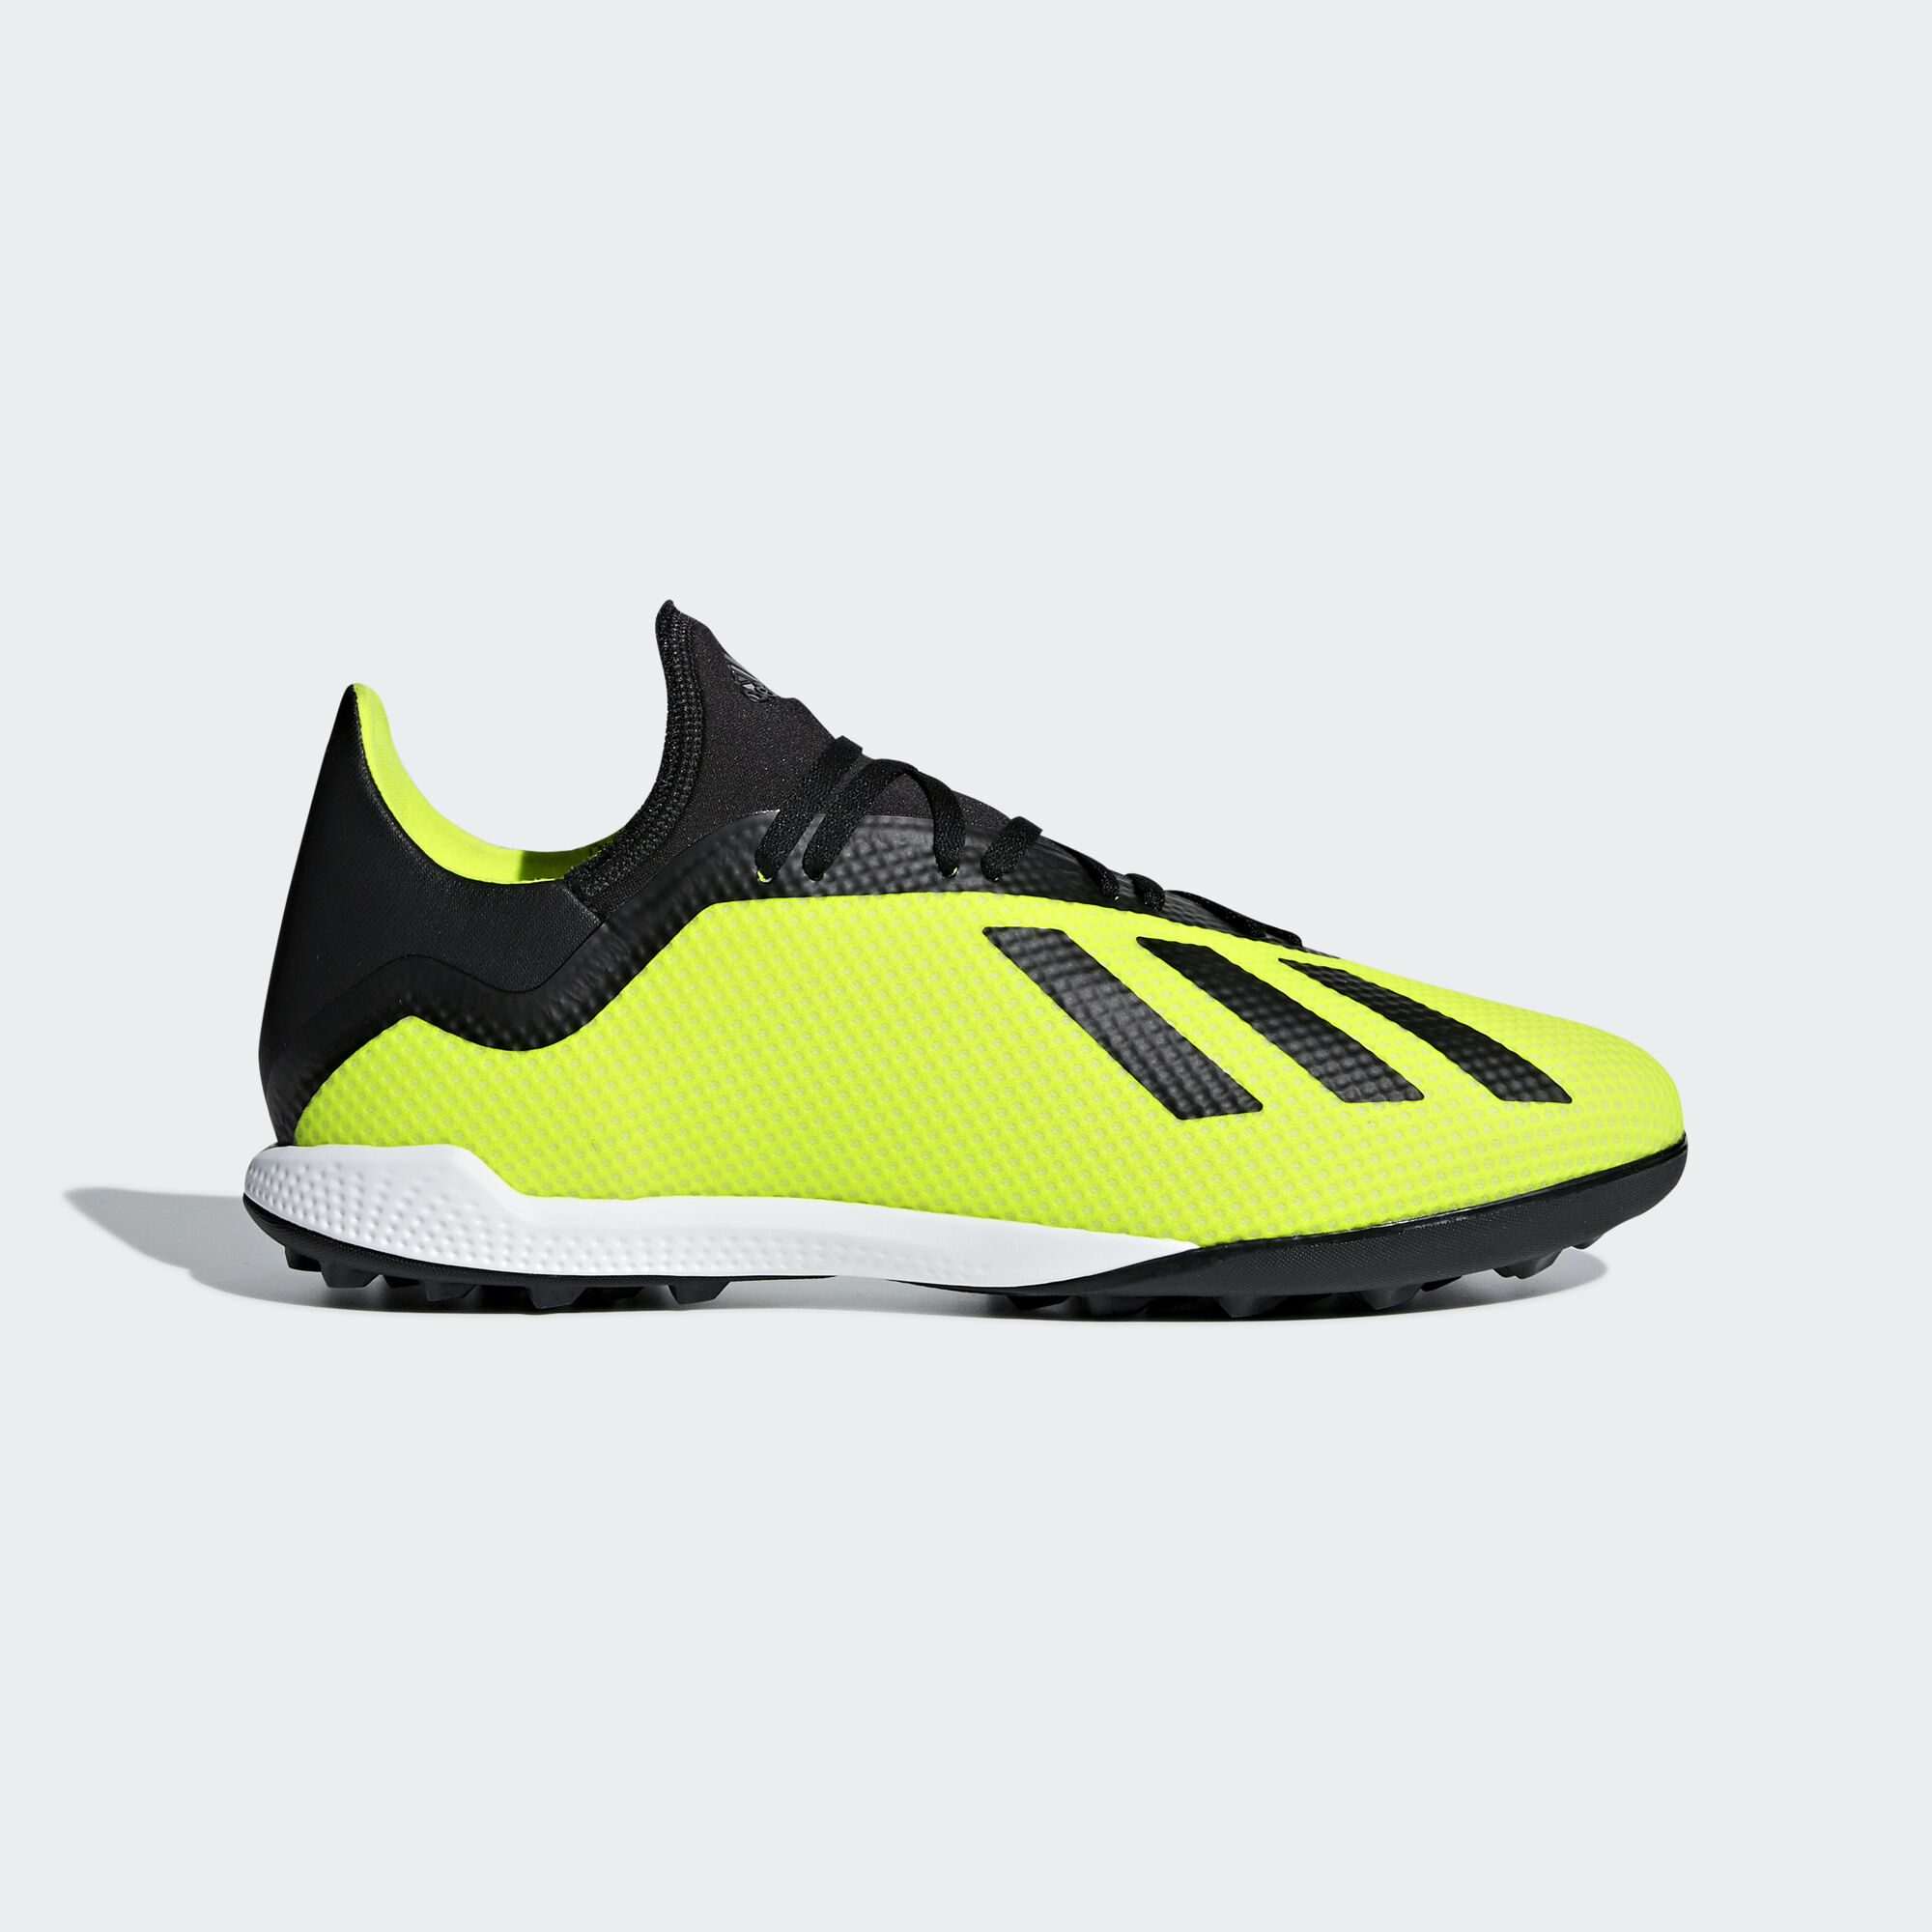 5be2b19ca601 ... de football 0db813 8fcbf b2b9c  authentic adidas x tango 18.3 turf boots  solar yellow core black ftwr white db2475 07232 0de6b